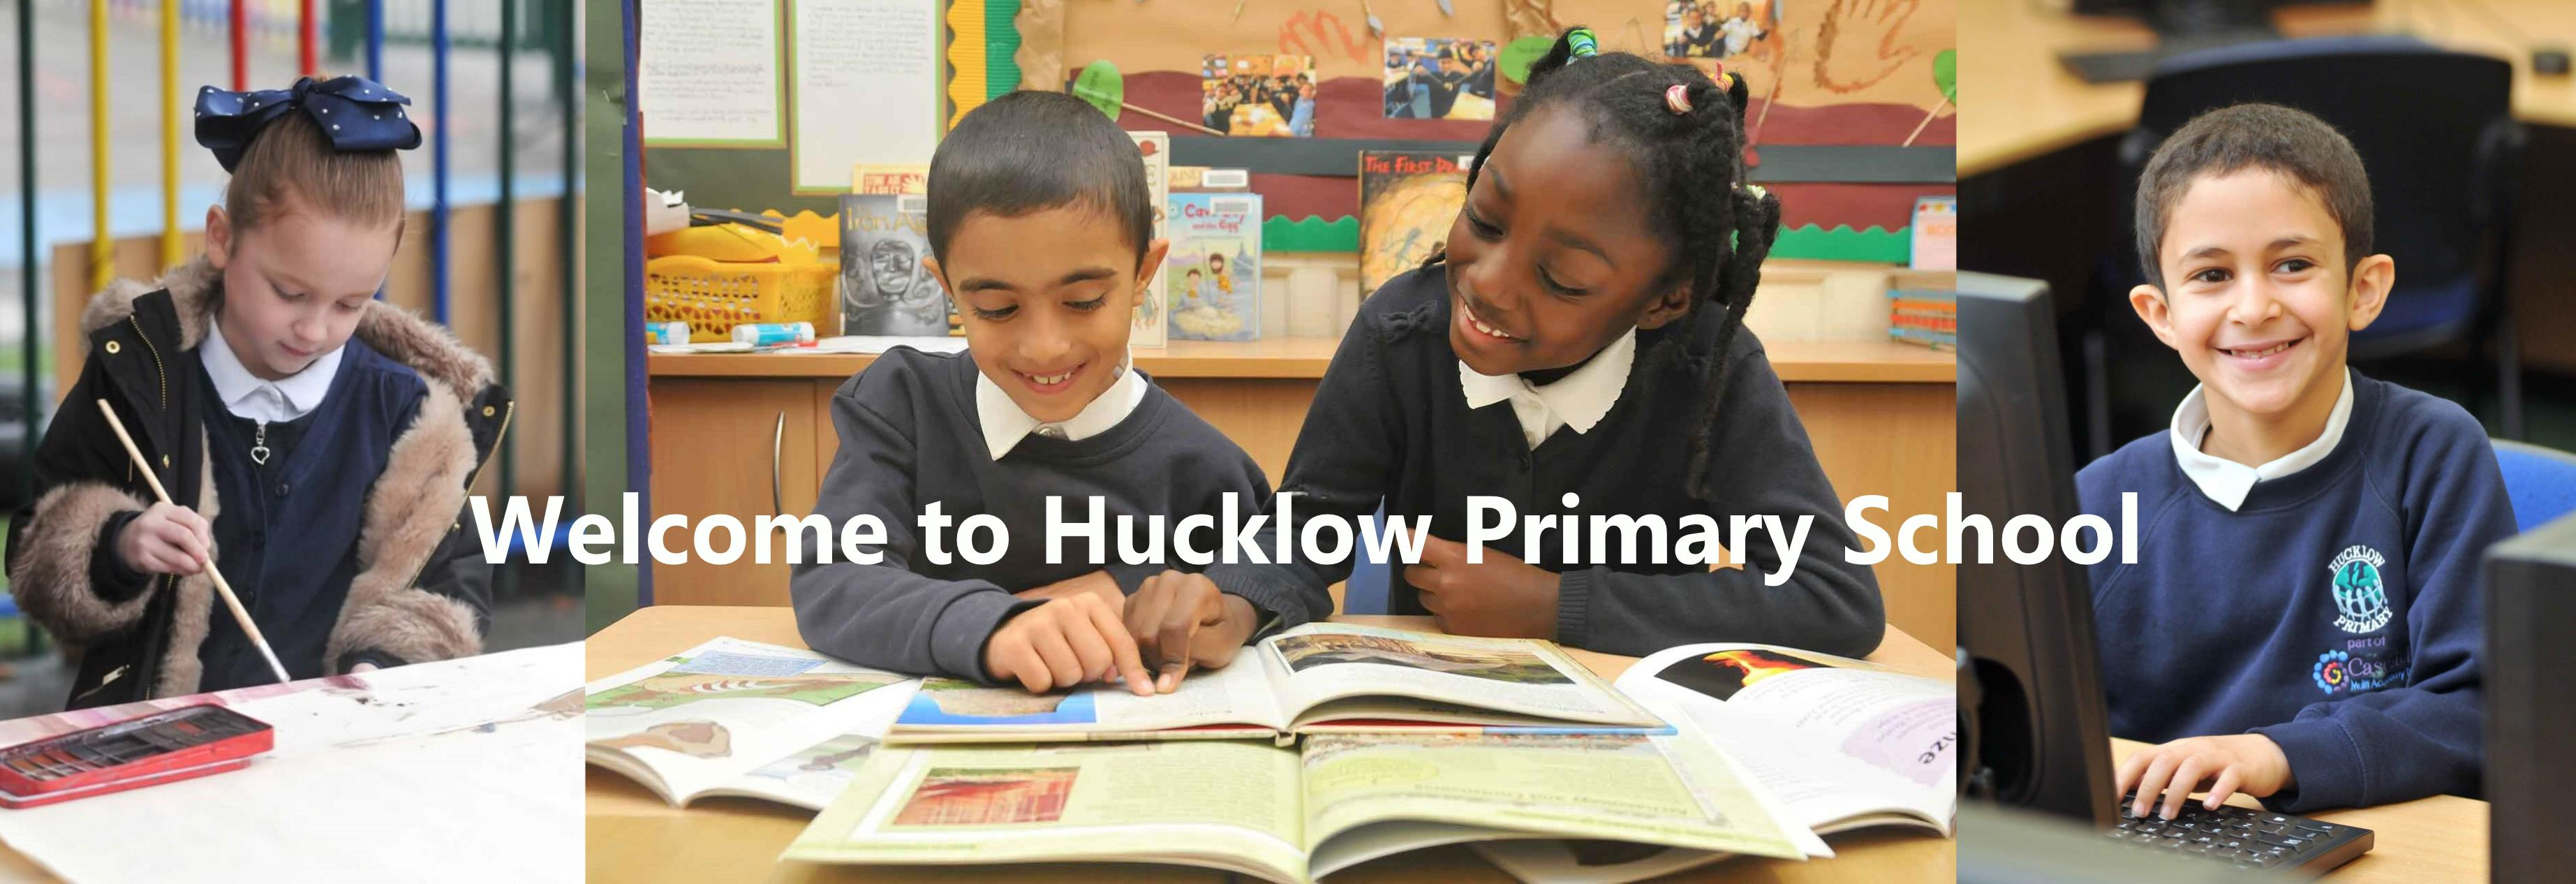 Welcome to Hucklow Primary School